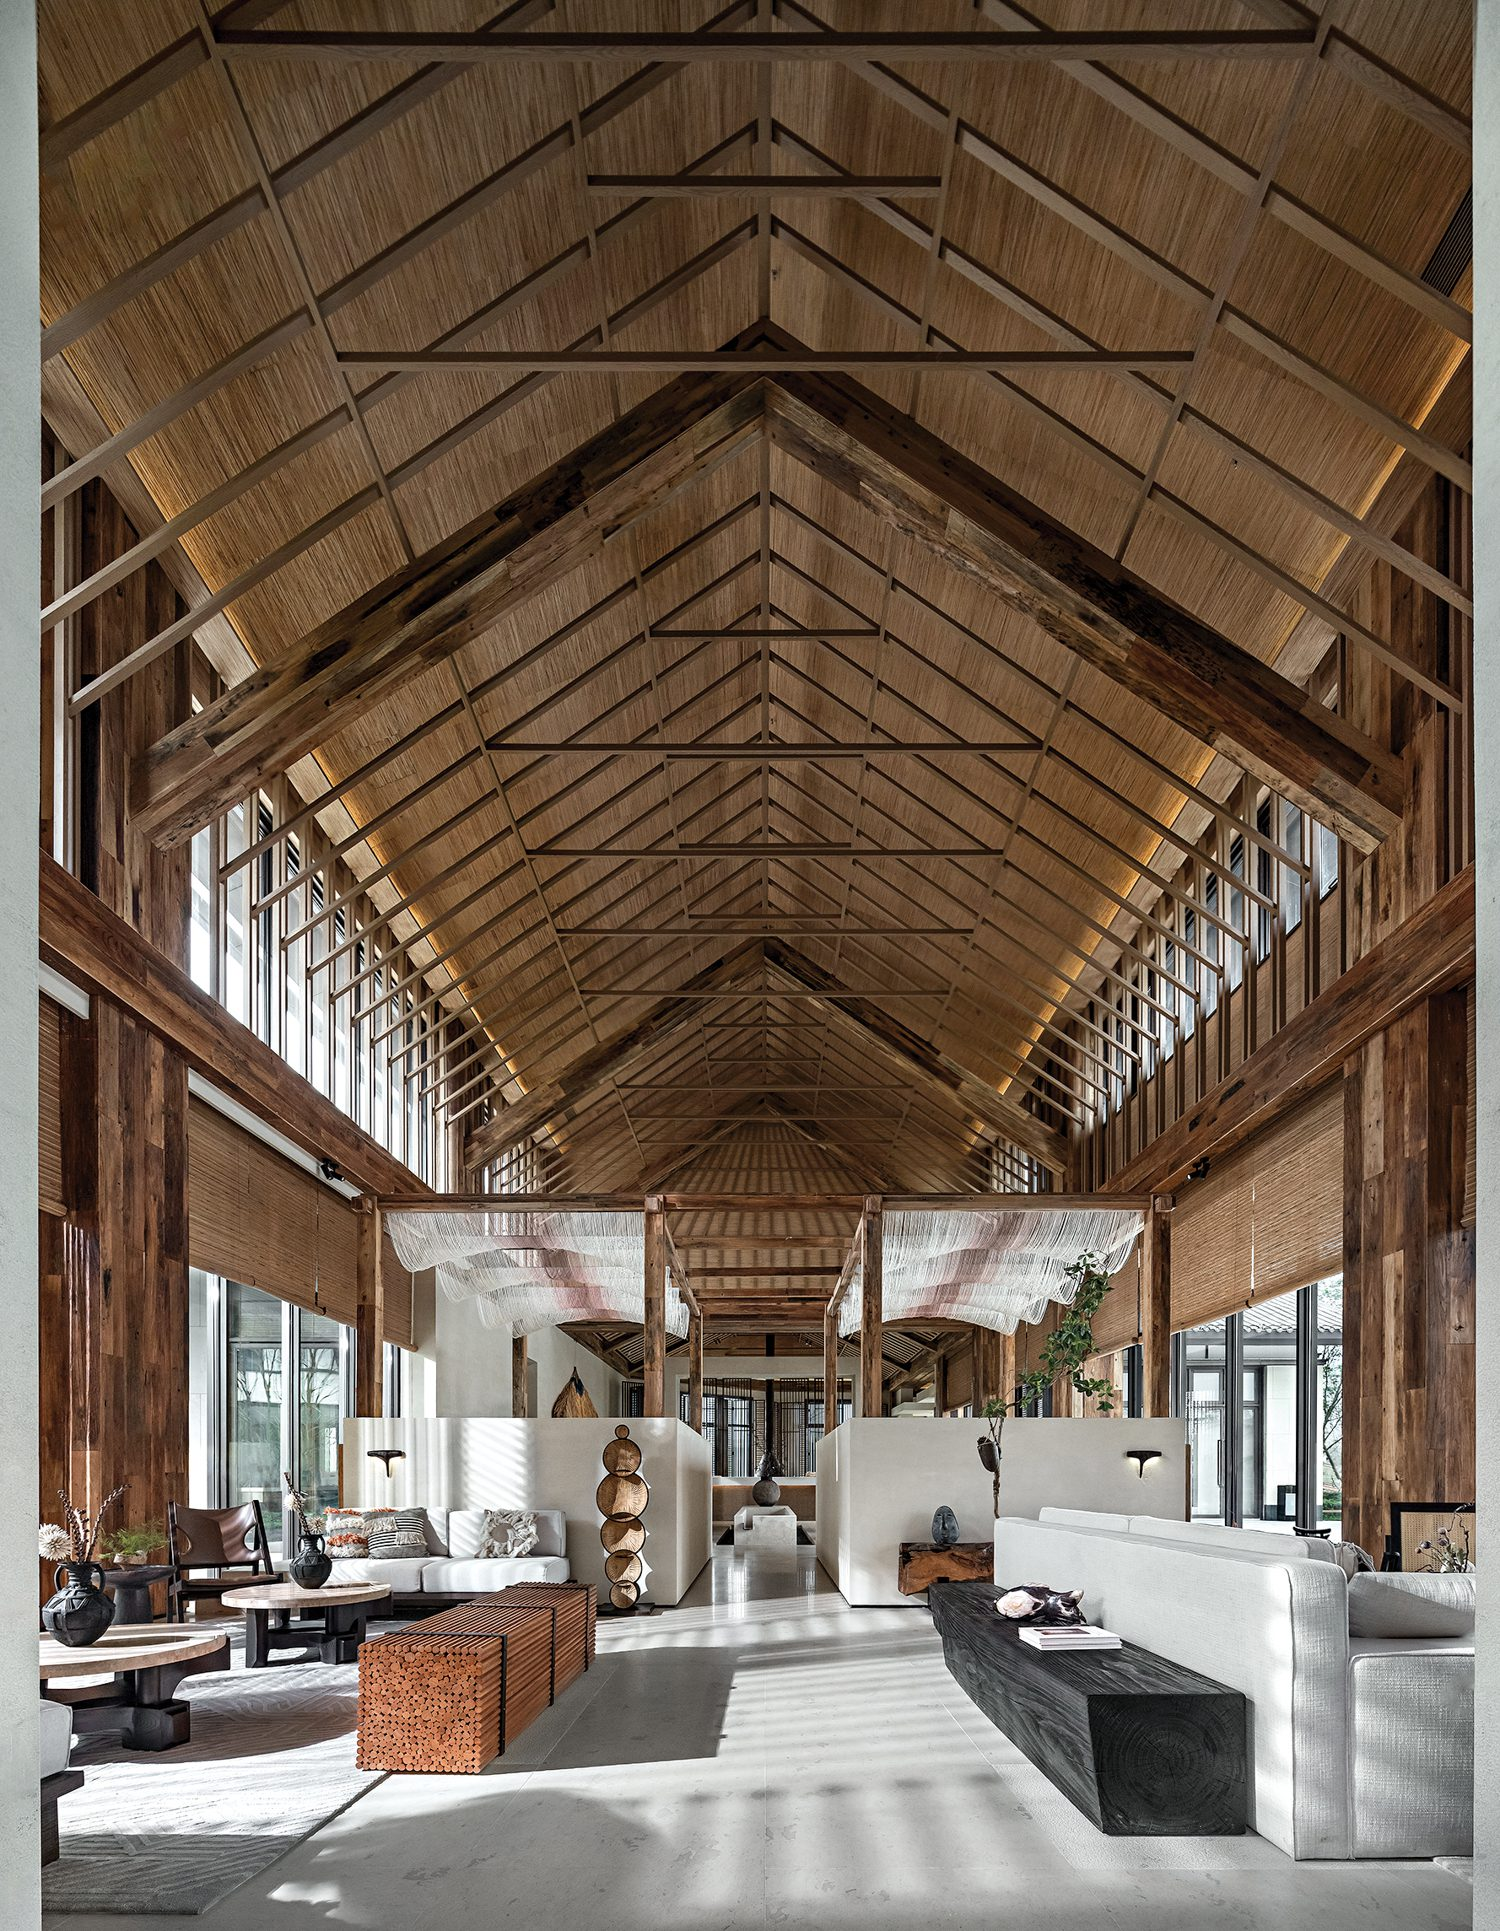 A pitched ceiling offers a rustic quality to the gallerylike interiors.